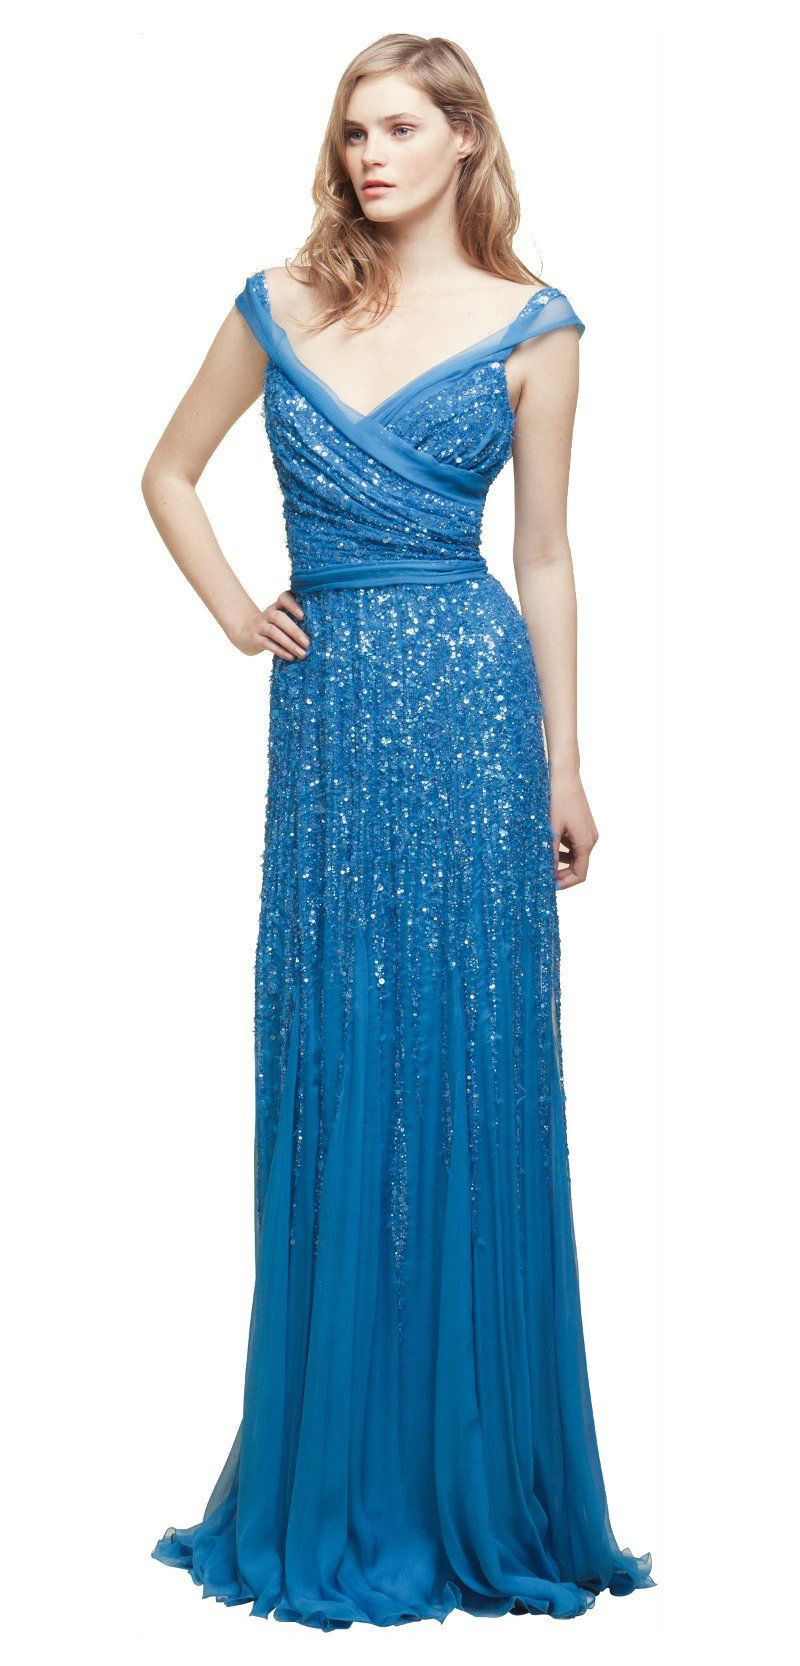 Purple dresses to wear to a wedding  Blue Shimmer  Beautiful Dresses  Pinterest  Blue gown Midnight